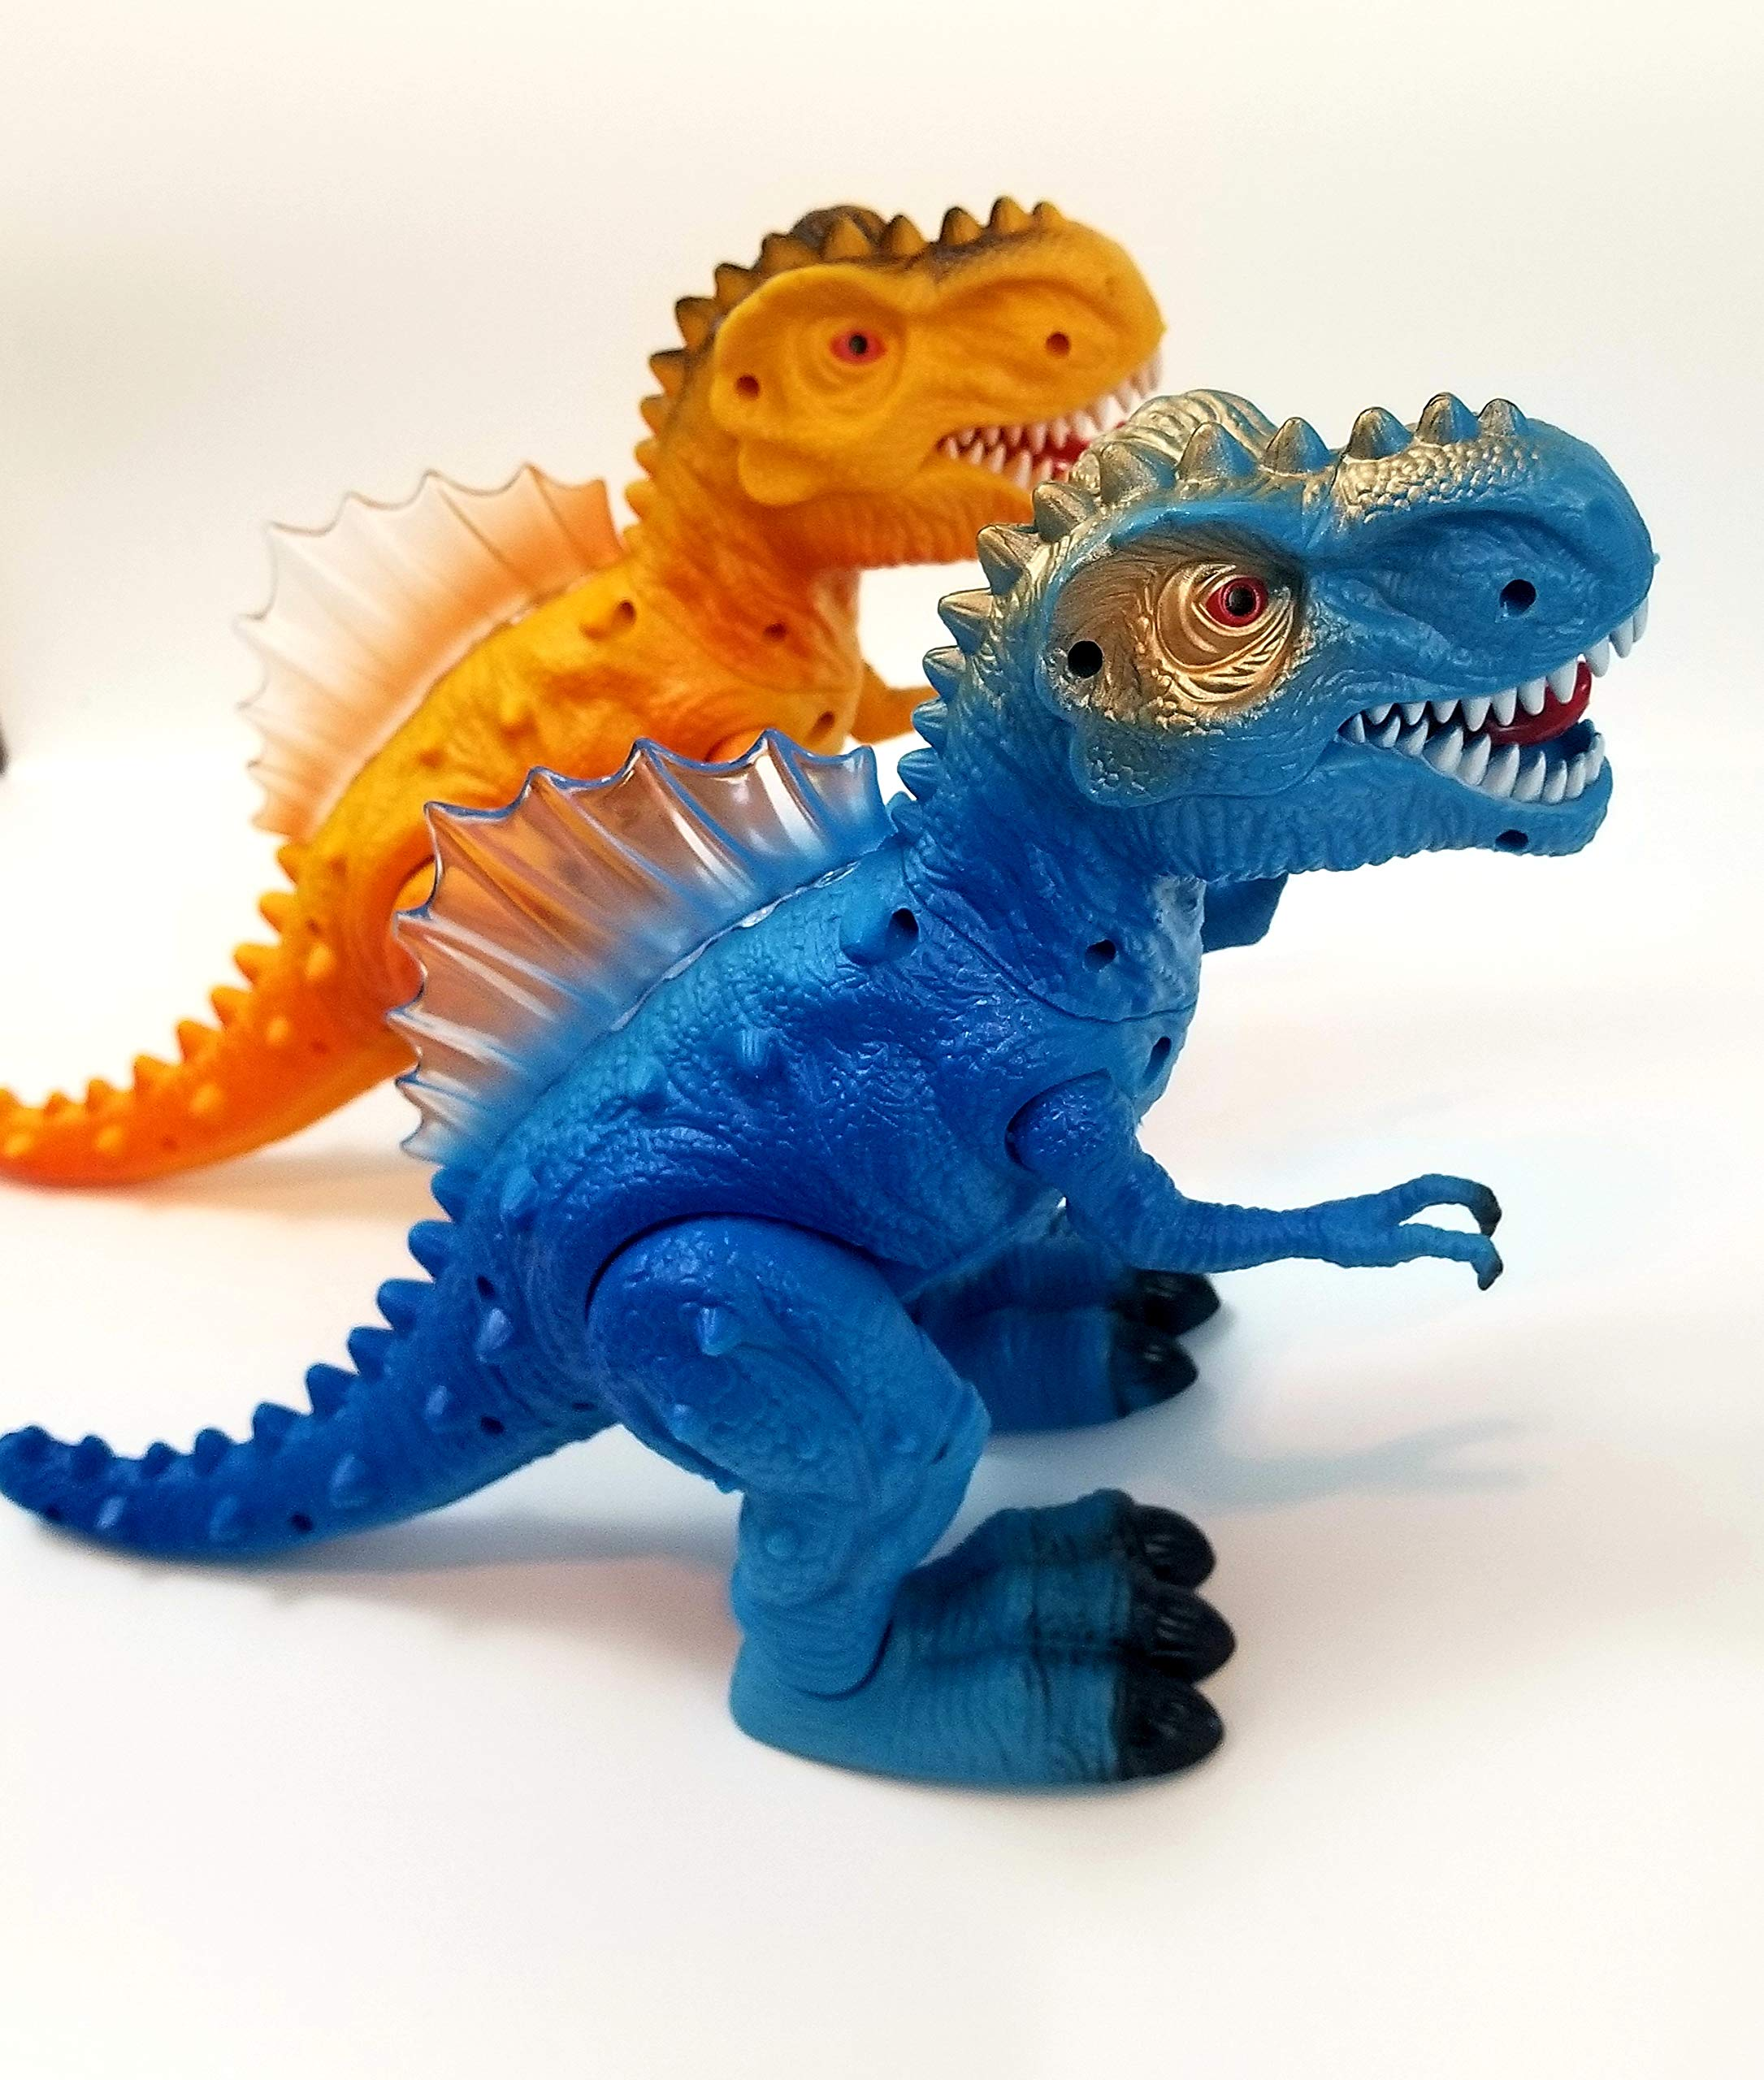 T-Rex Electronic Walking Dinosaur with Flashing Lights and Realistic Animal Sounds (Blue) by Vabliss (Image #1)